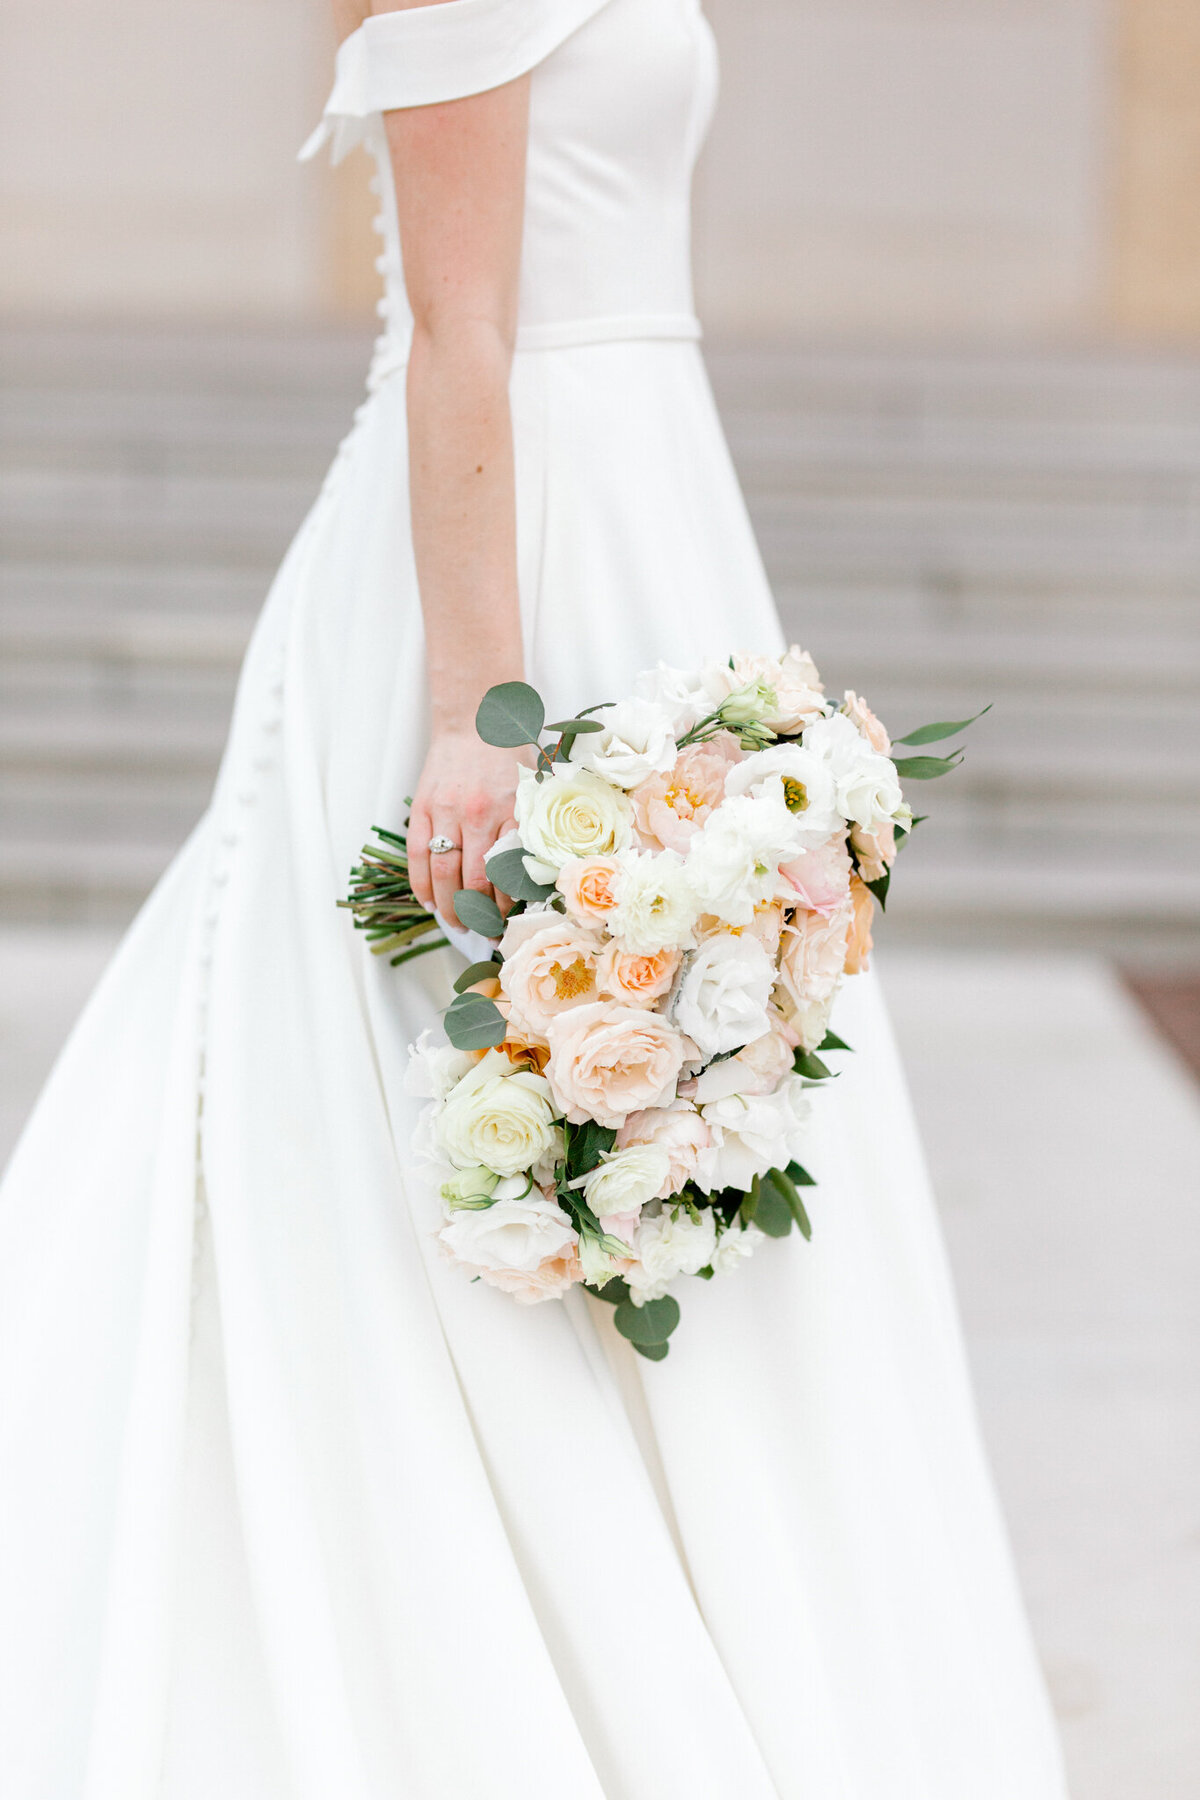 Lexi Broughton Bridal Portraits at TCU Robert Carr Chapel Fort Worth, Texas | Sami Kathryn Photography | Dallas DFW Wedding Photographer | R. Love Floral Blush and Peach Bouquet-30